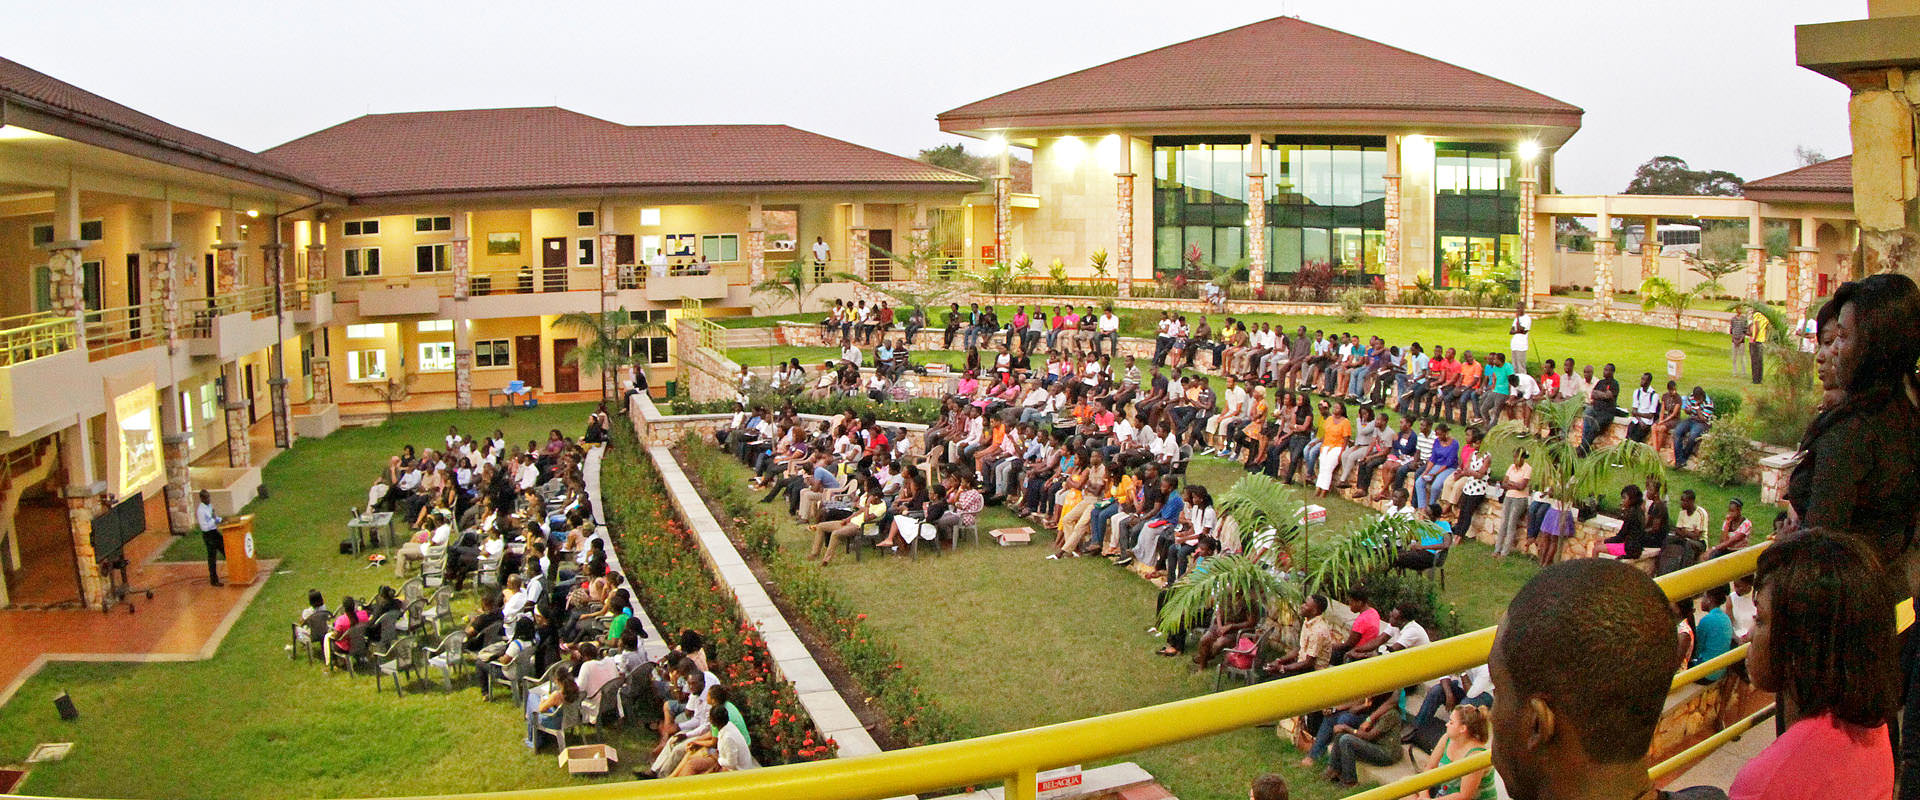 Ashesi campus photo